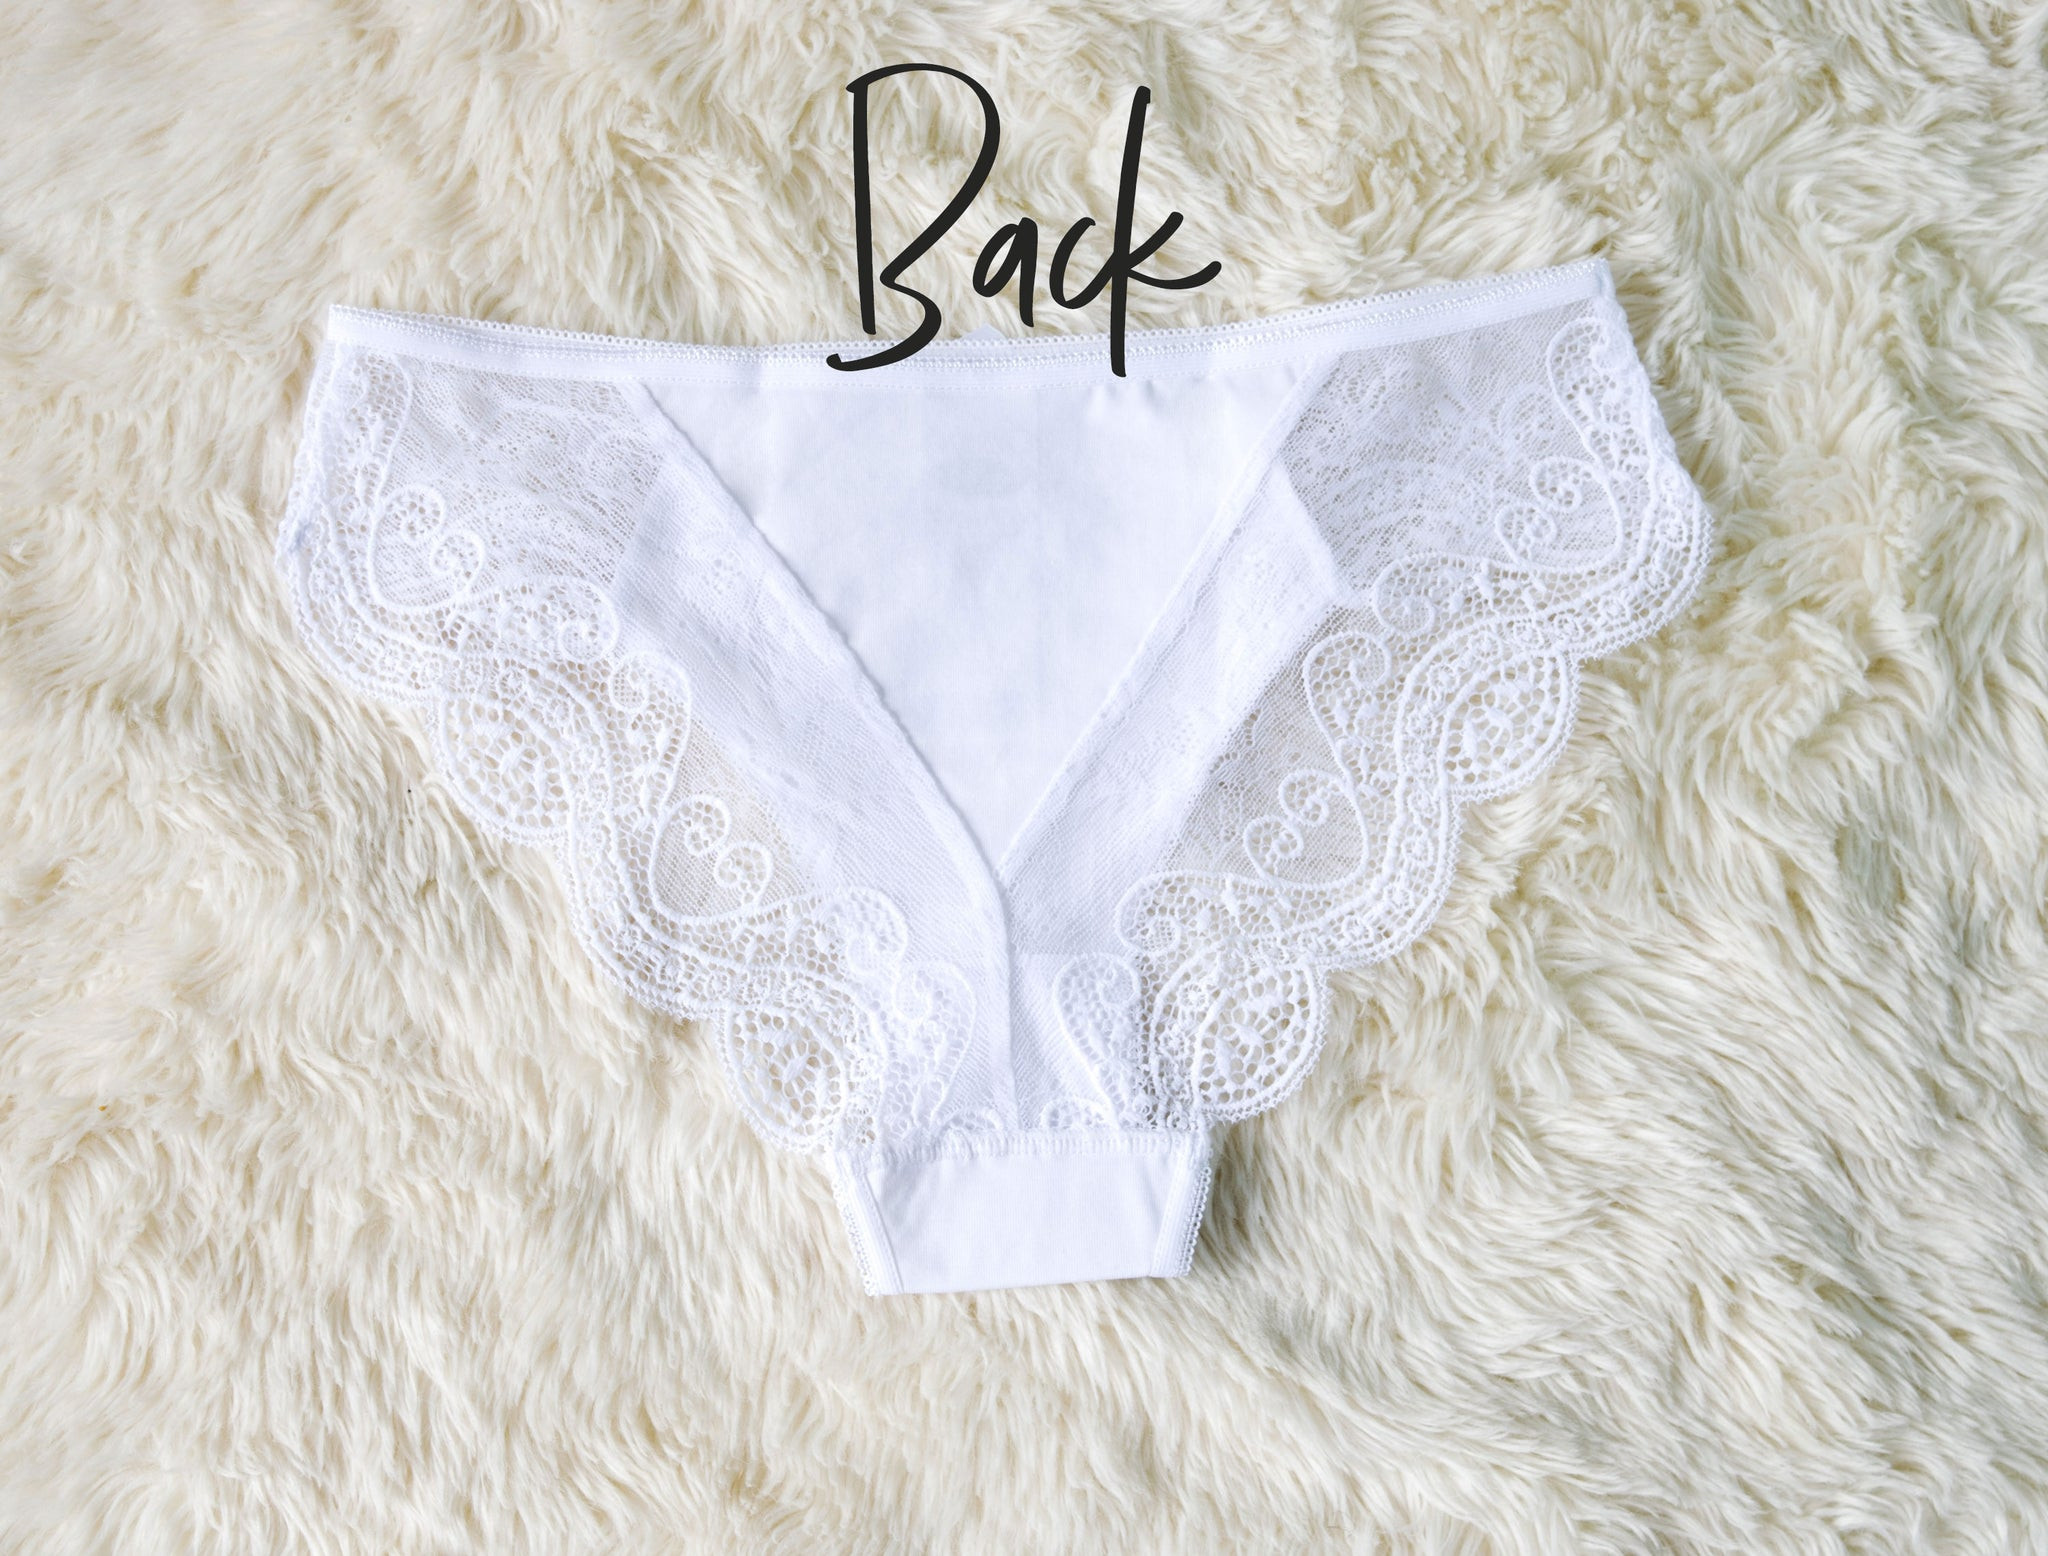 70ecb8ce9 Personalized Bride Panties – With Love   Luxe